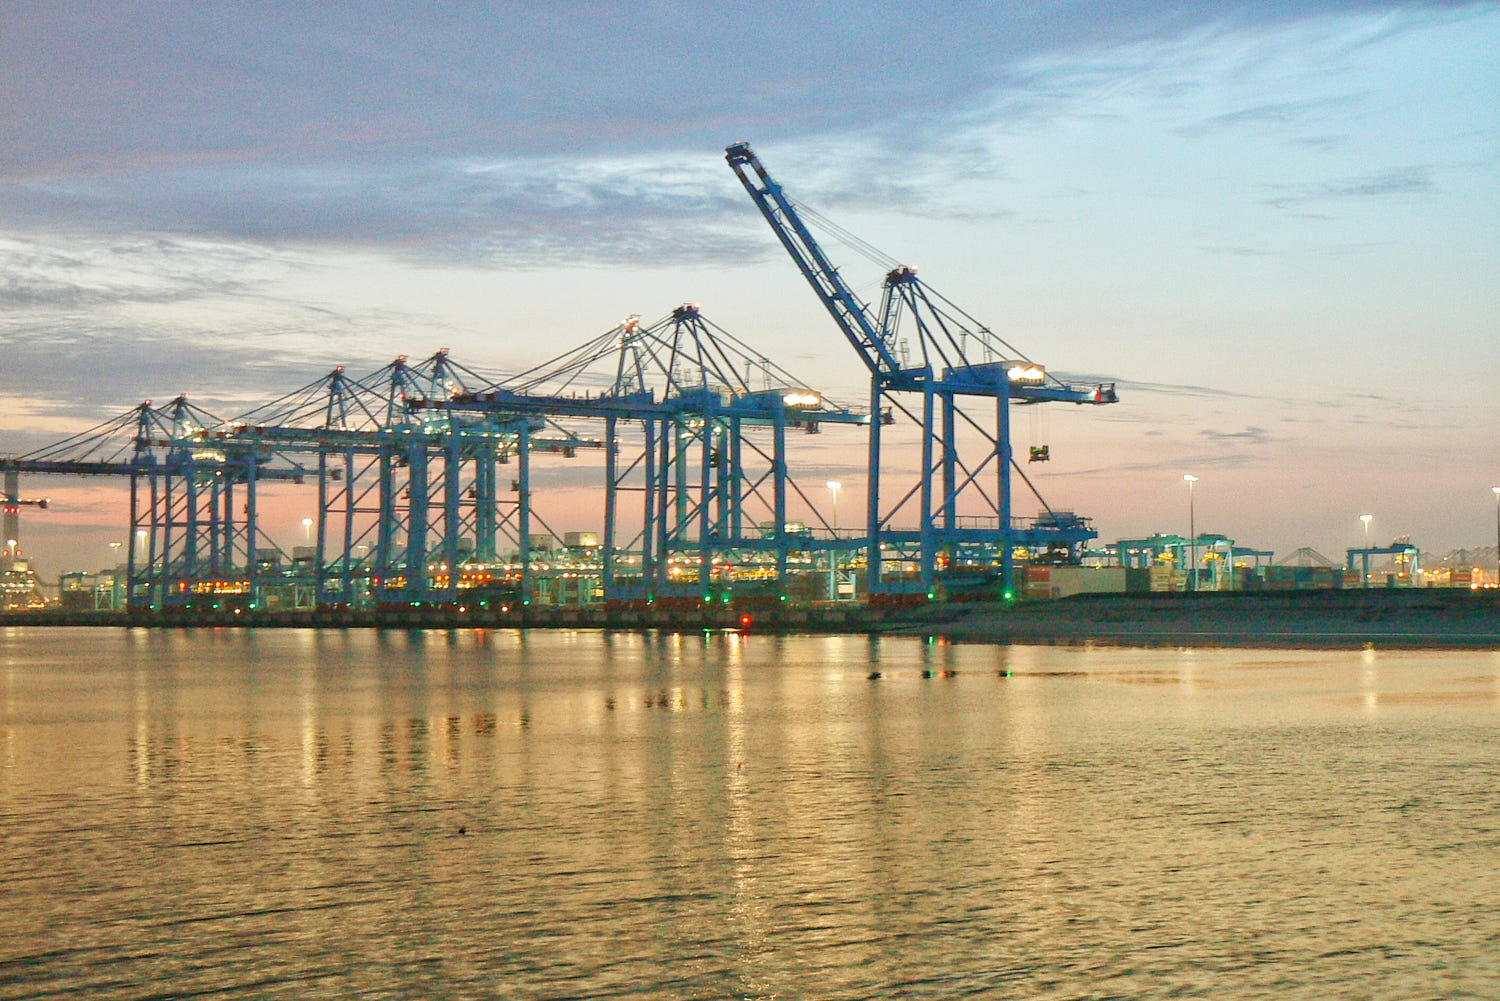 Sunrise over APM terminal, Amaliahaven Rotterdam by Dirk